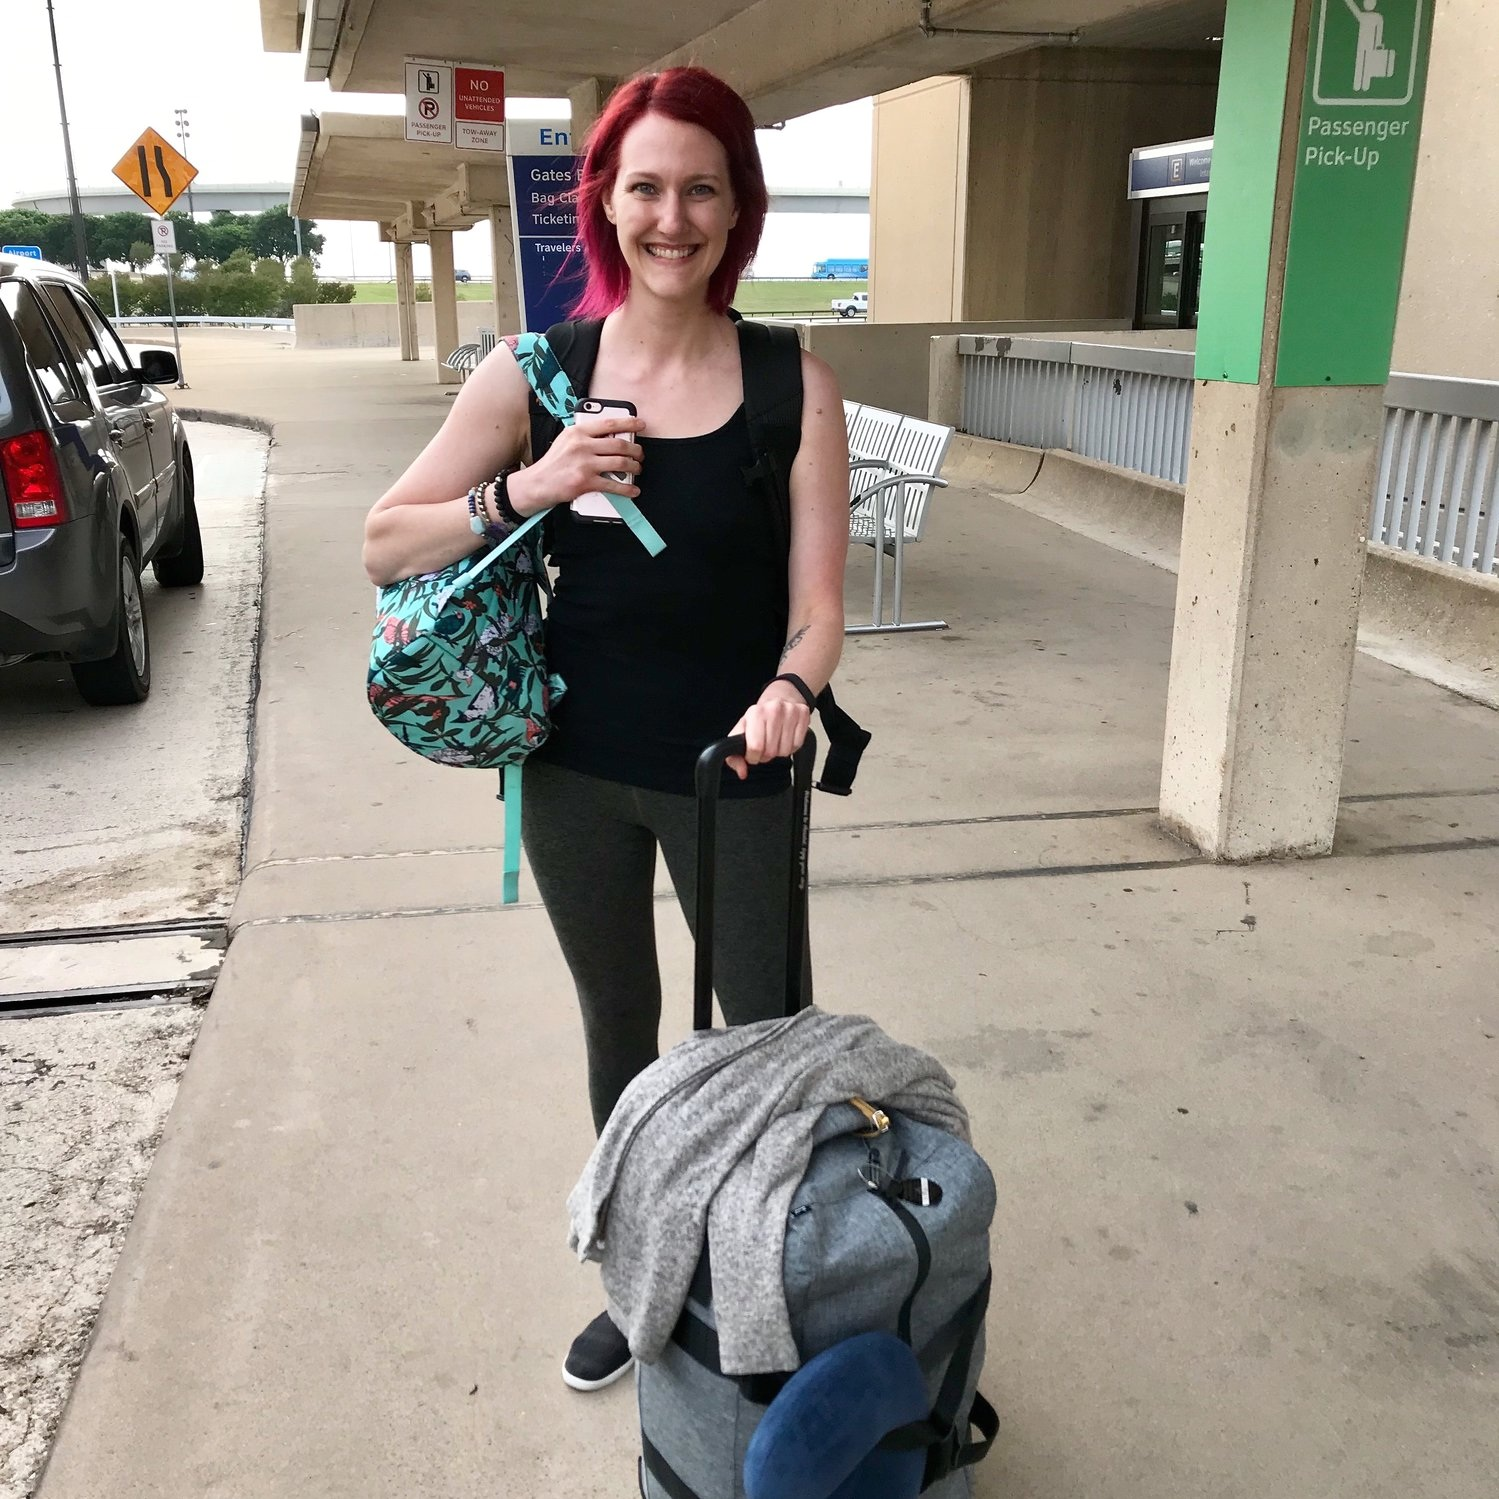 Start of my nomadic journey - dfw to syd - May 2, 2018